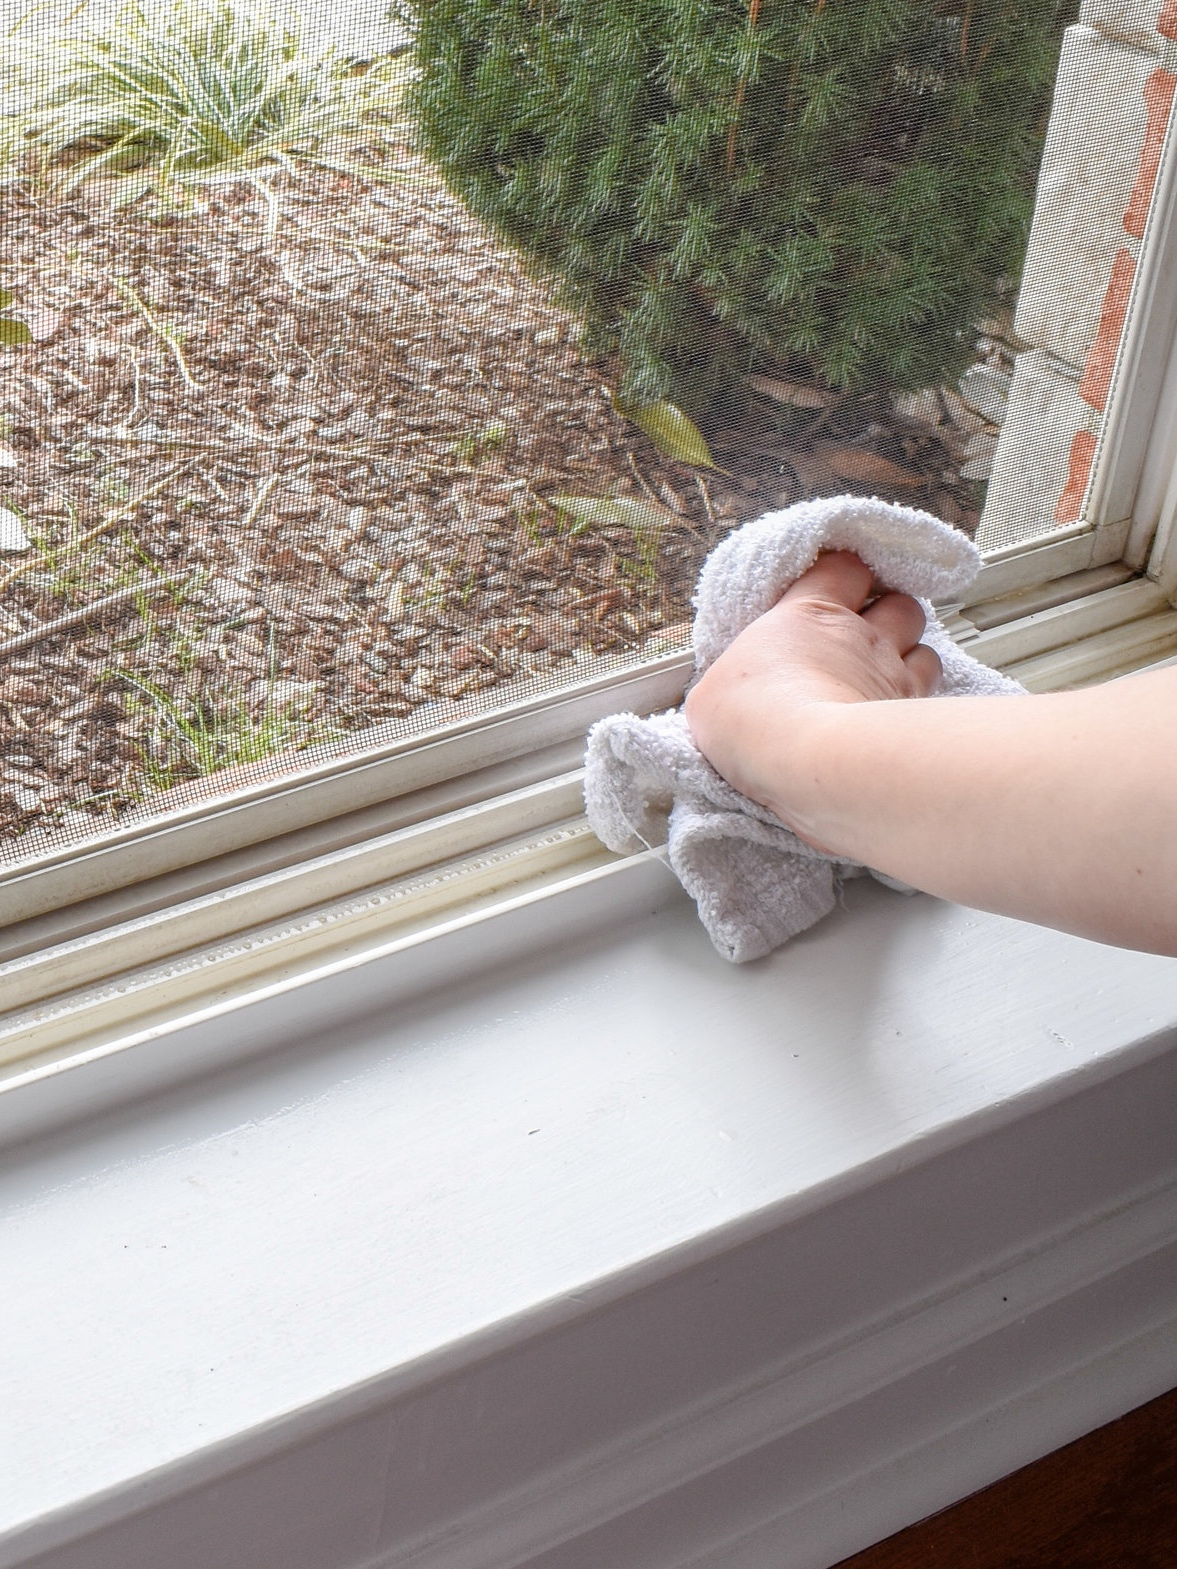 Cleaning Vinyl Windows: Step Four: Scrub each crevice, while wet with cleaning solution, using an old toothbrush or cleaning brush. Since my windows are vinyl and have begun to discolor, I also added a dap of toothpaste to brighten the plastic.